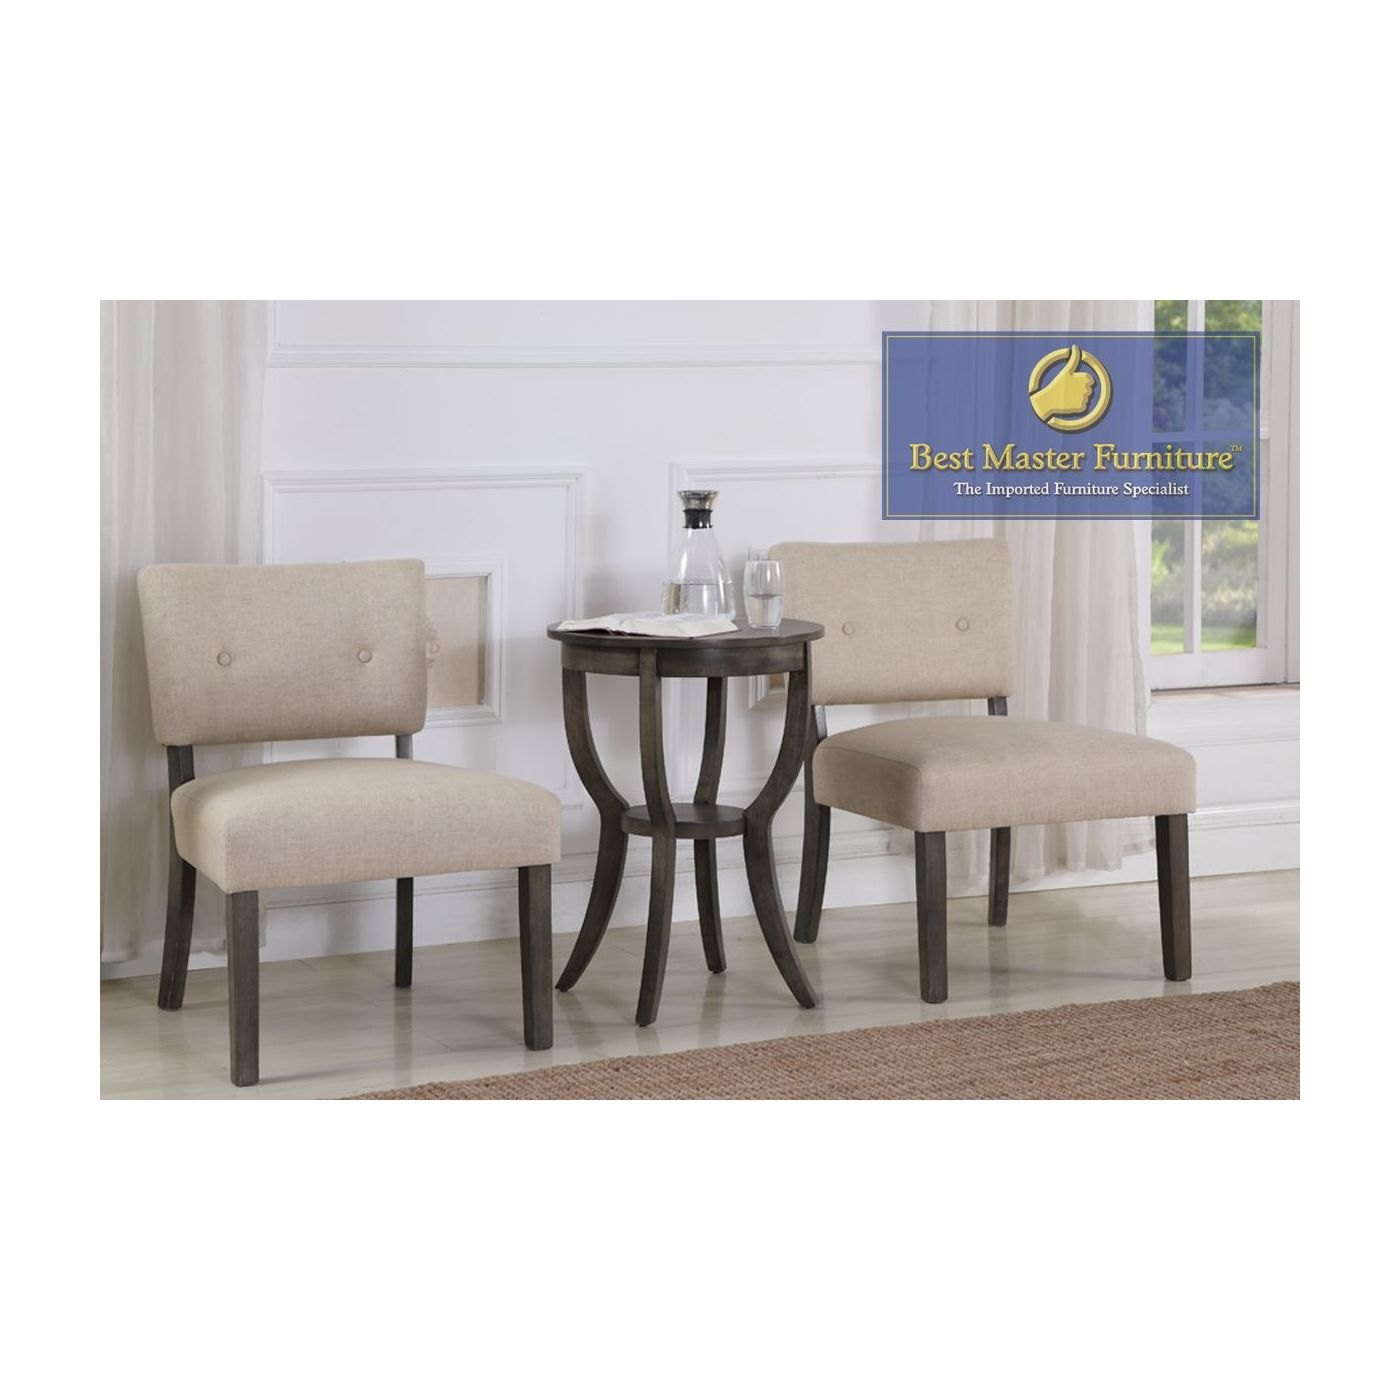 accent chair table set best master furniture piece and side over sofa arm mosaic bistro chairs ashley chaise concrete coffee end tables vintage white nightstand with charging